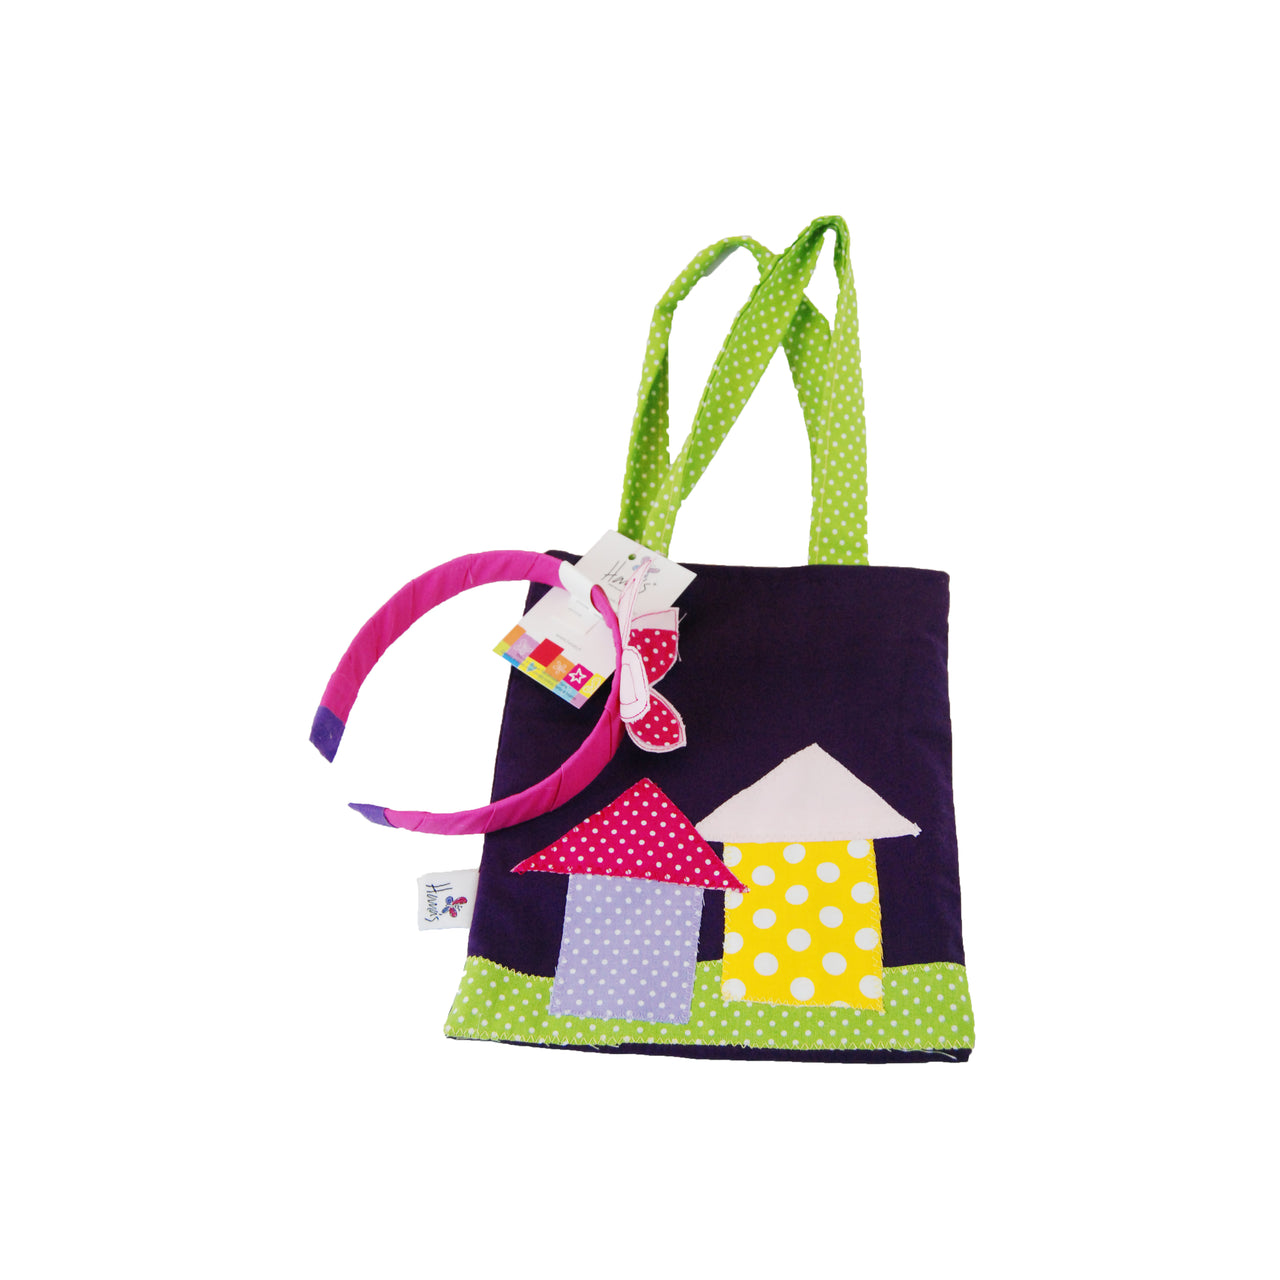 The dark purple houses bag and headband is one of our best seller gifts for girls! Hand sewn of 100% cotton fabric and layered with colourful pieces of fabric, the bag is reversible.